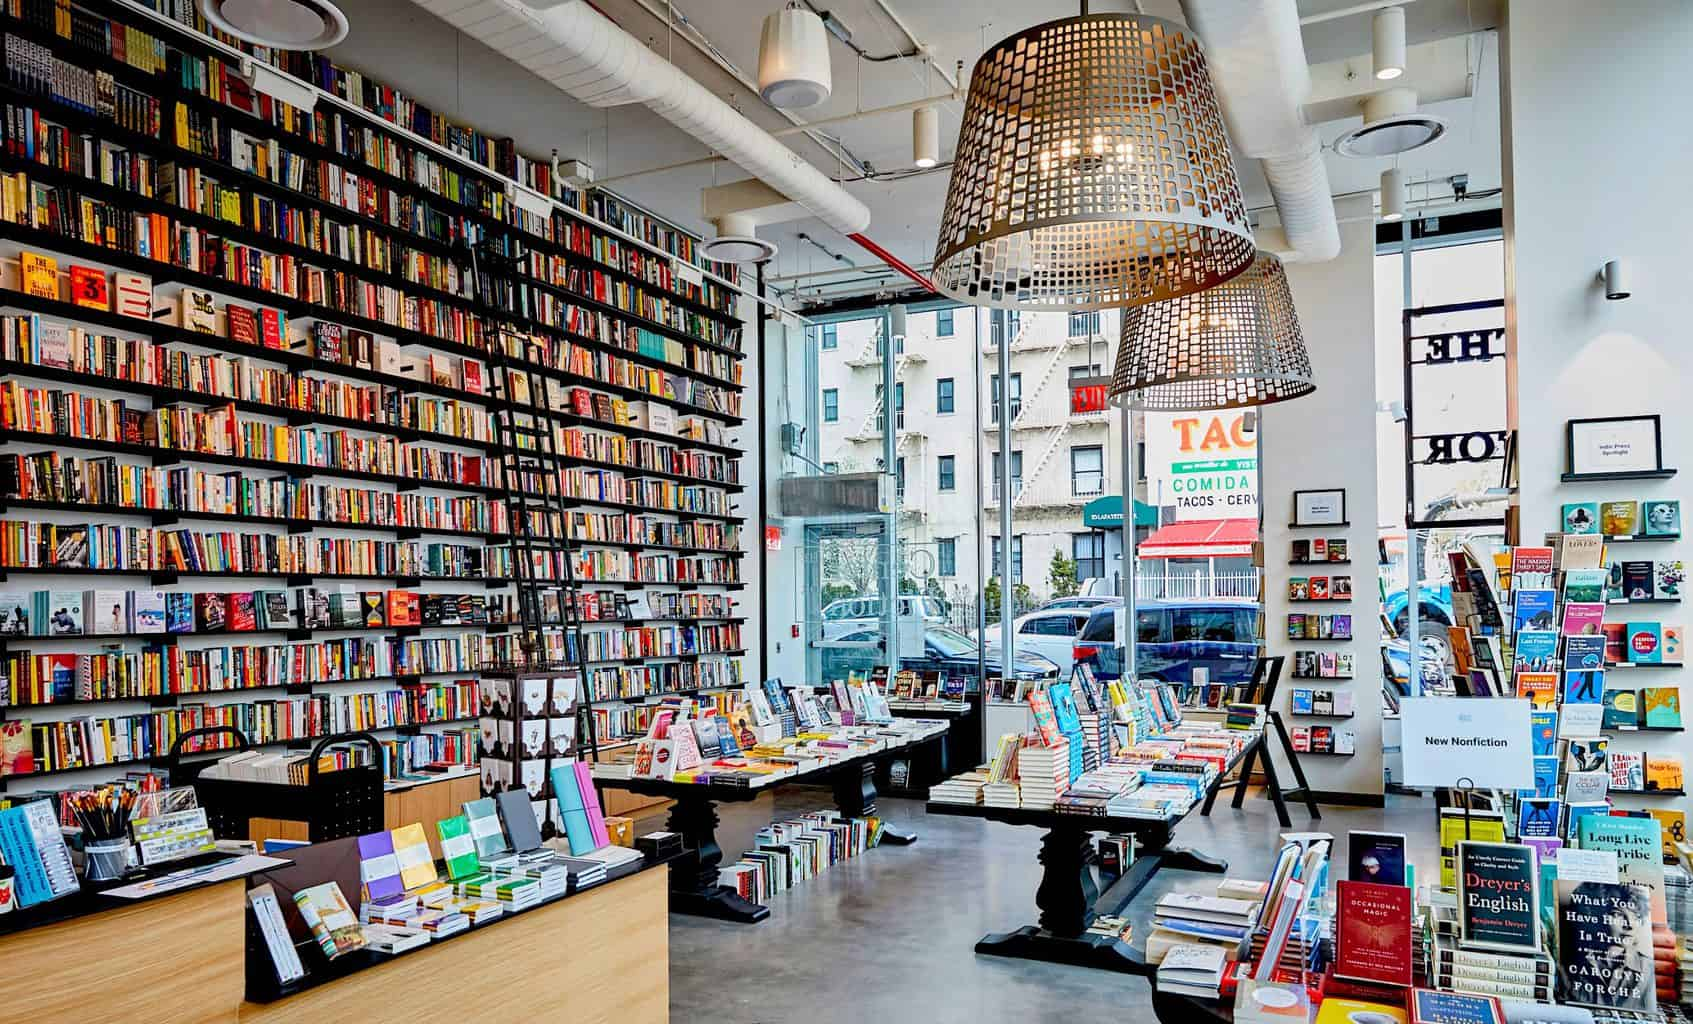 The light, bright, and welcoming interior of the Center for Fiction in Brooklyn.